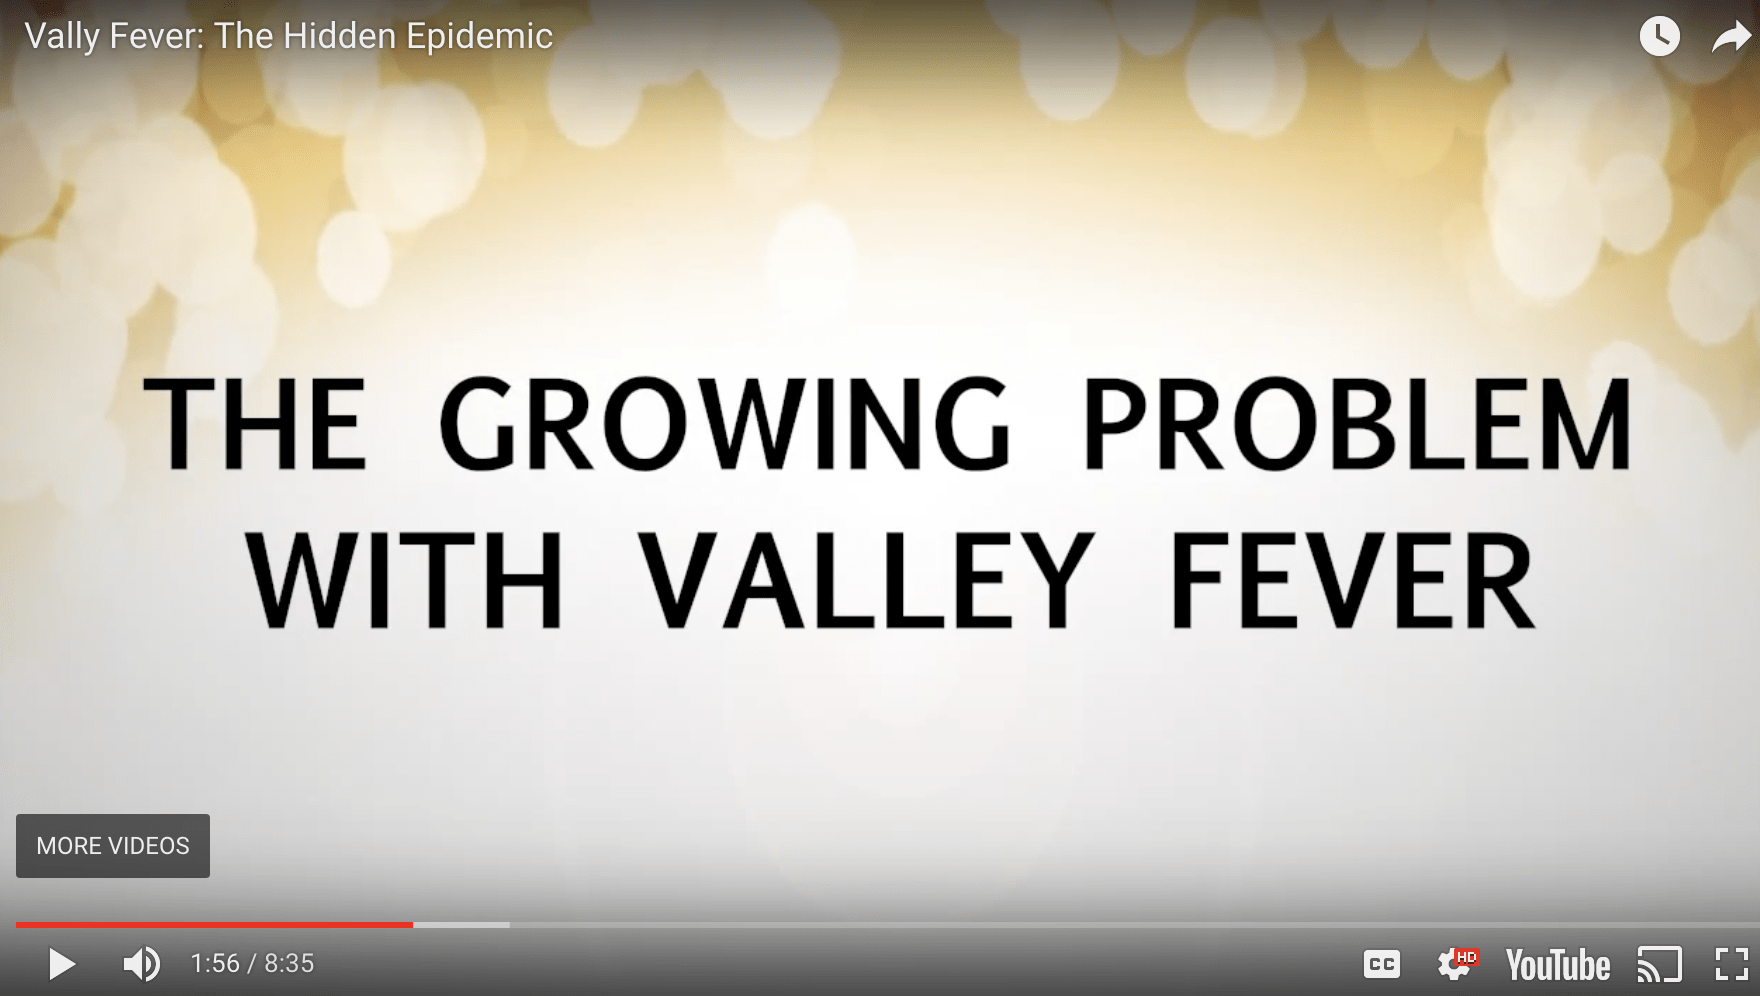 Valley Fever: The Hidden Epidemic